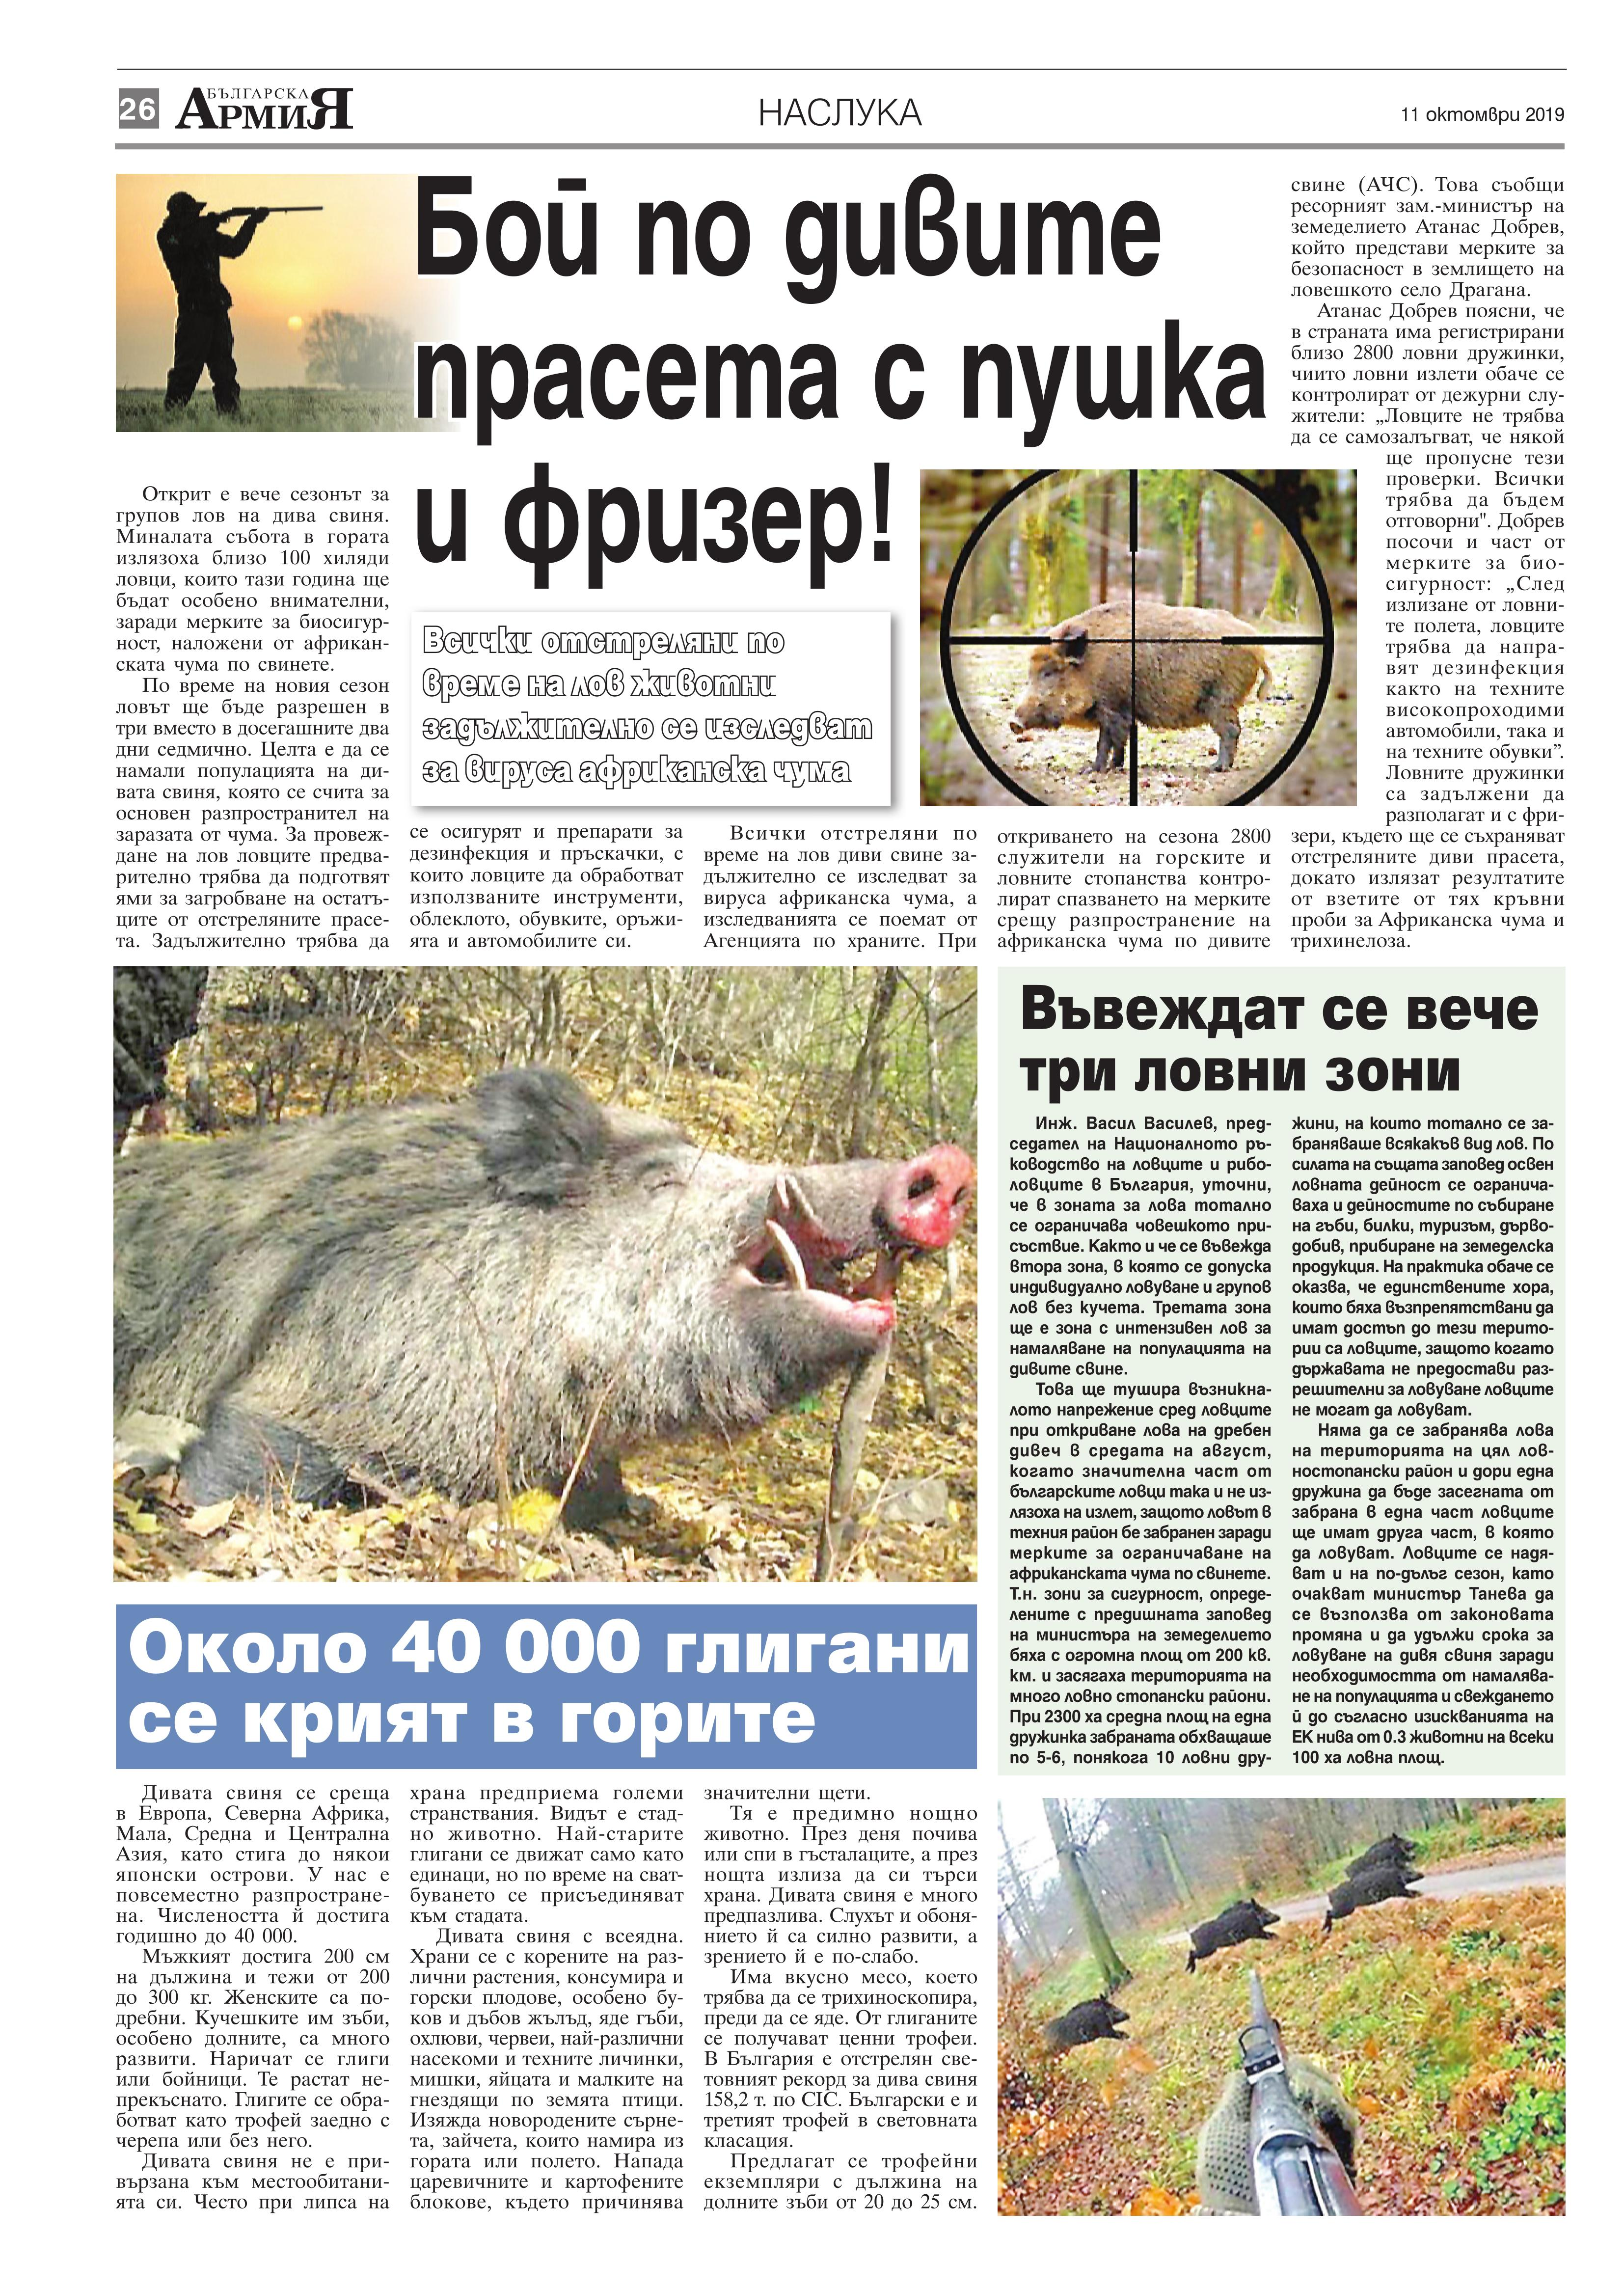 https://www.armymedia.bg/wp-content/uploads/2015/06/26.page1_-91.jpg